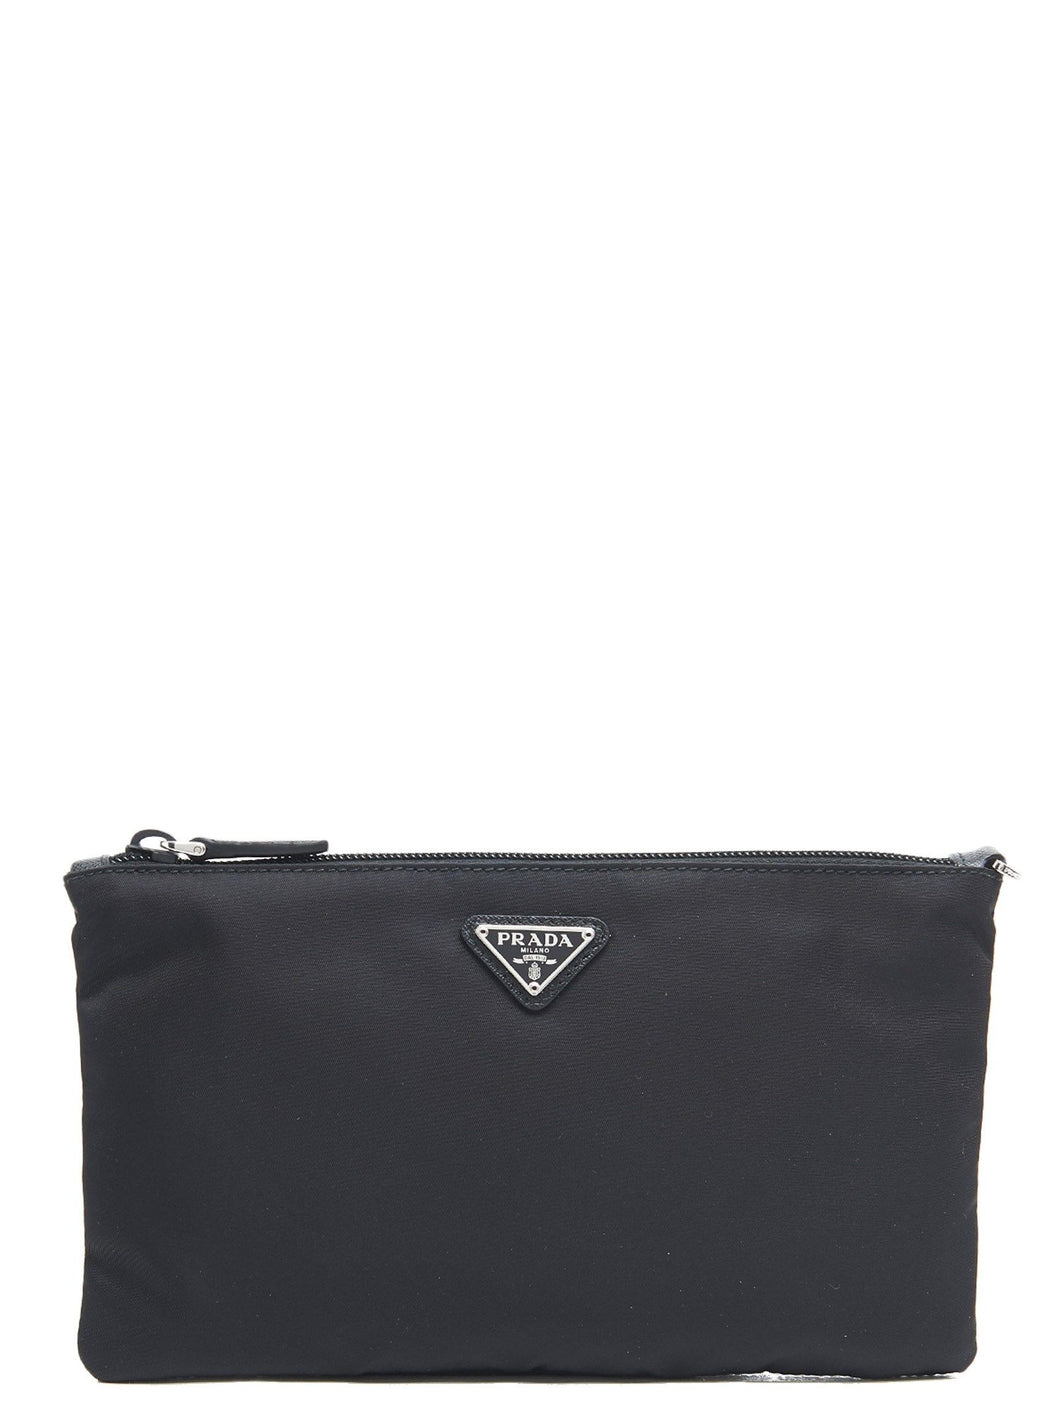 PRADA logo plaque zipped pouch